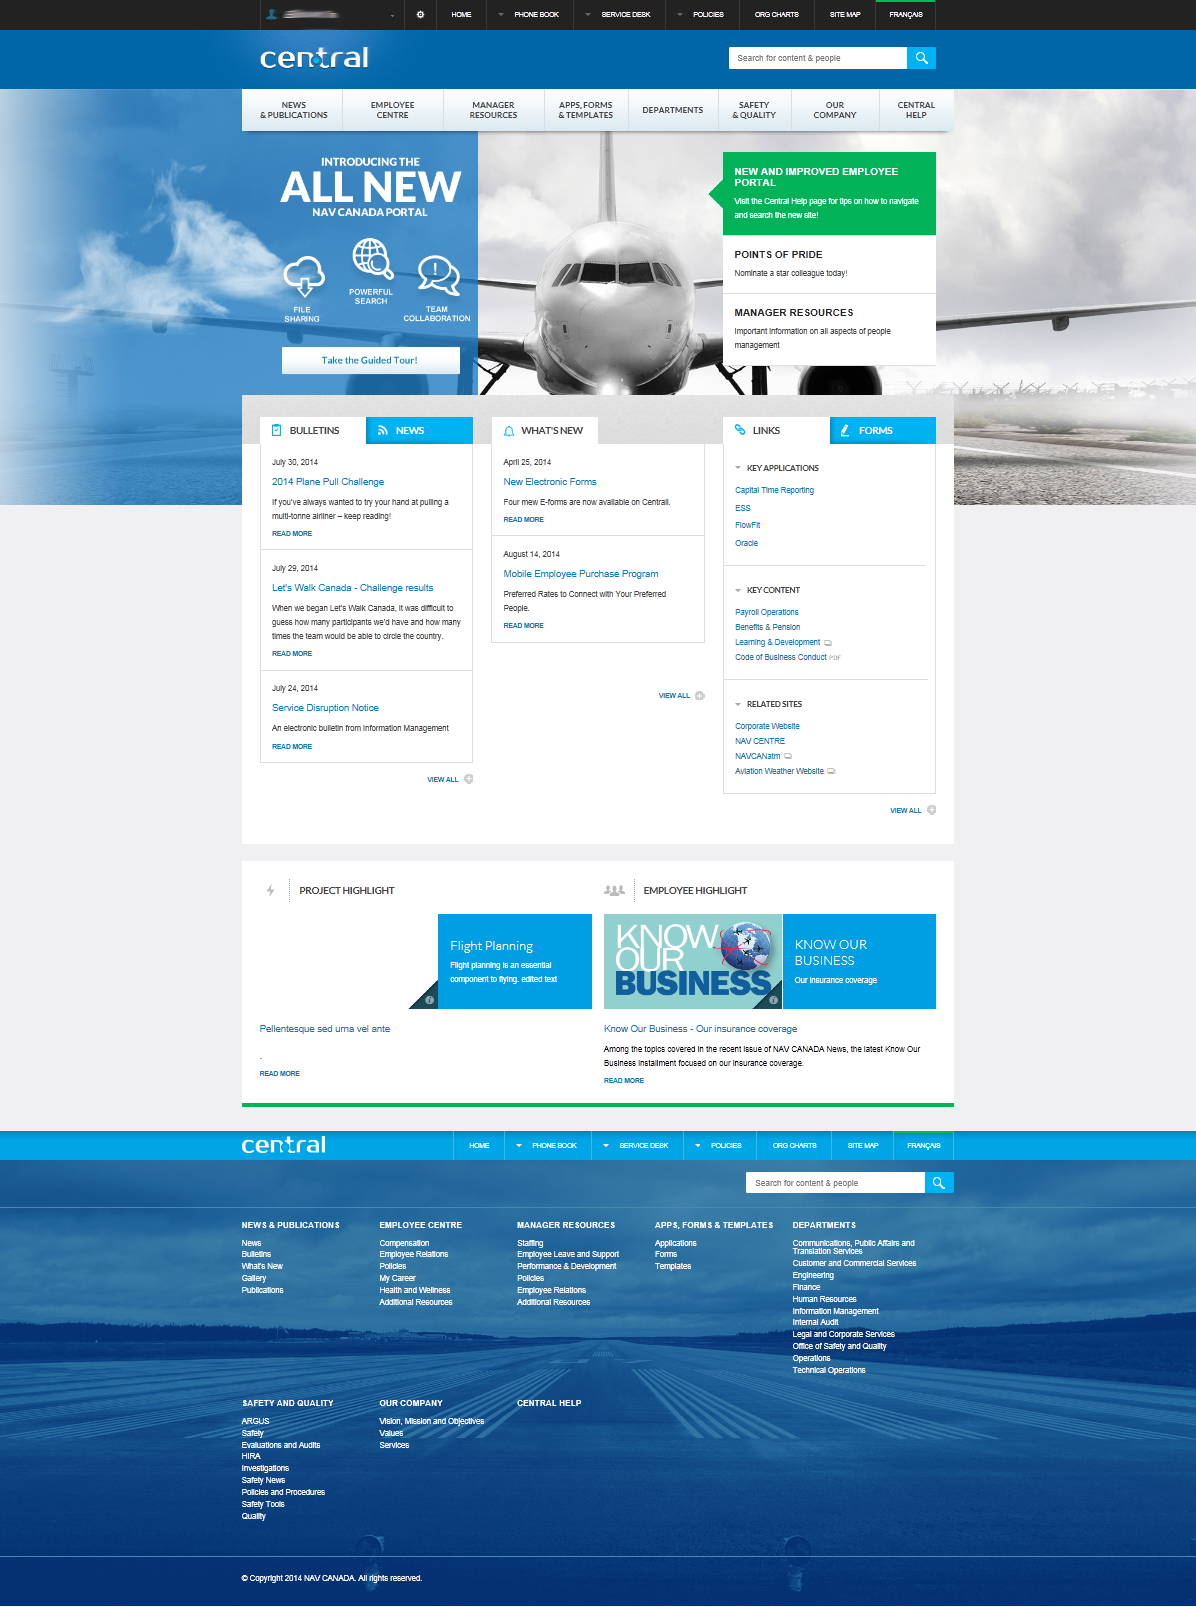 nav canadas delightful intranet is based on sharepoint 2013 above is the homepage the - Intranet Design Ideas